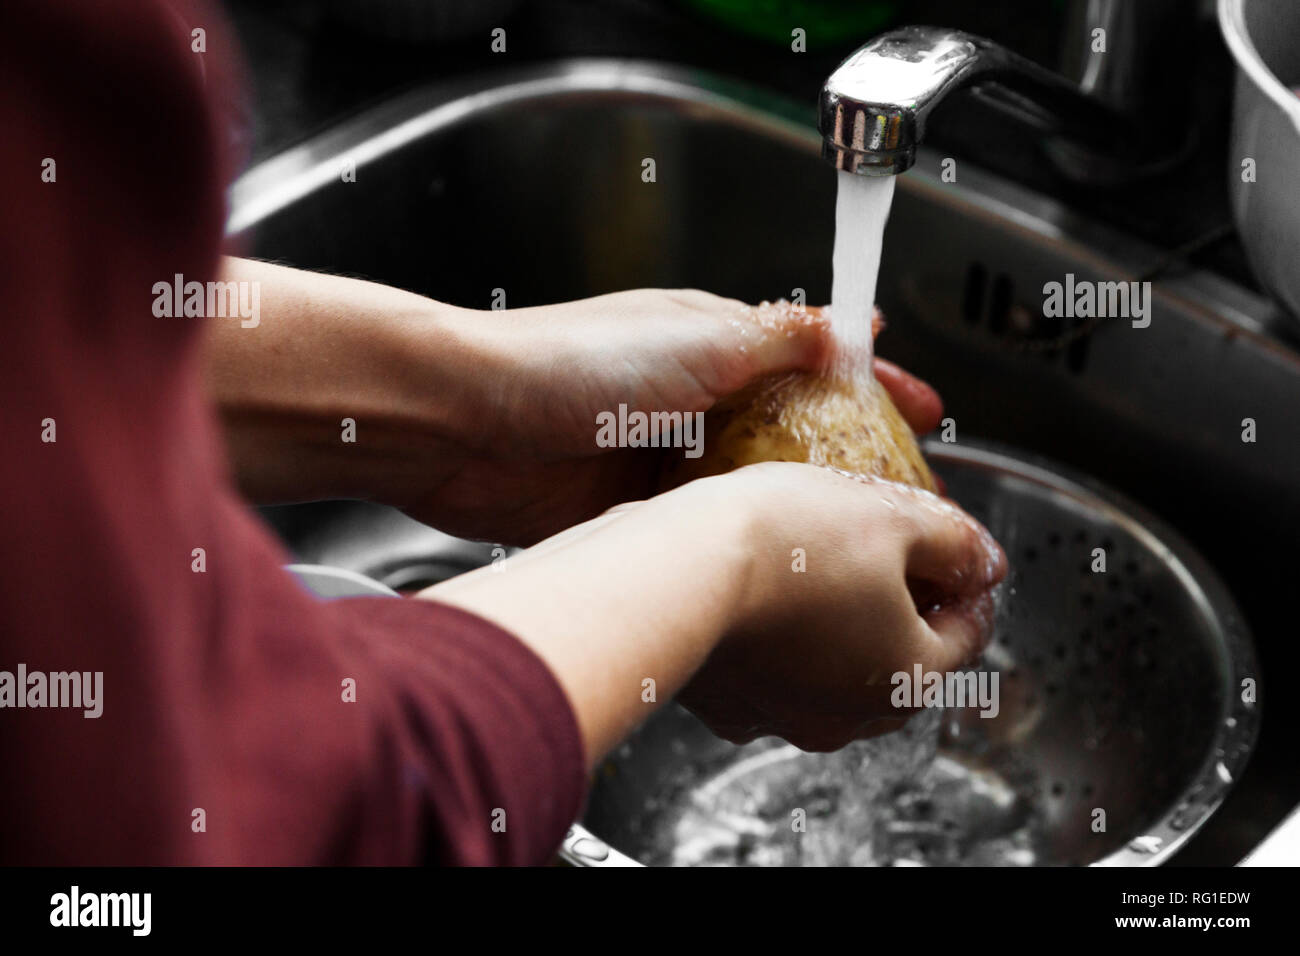 Hand washing potatoes in domestic kitchen sink. - Stock Image